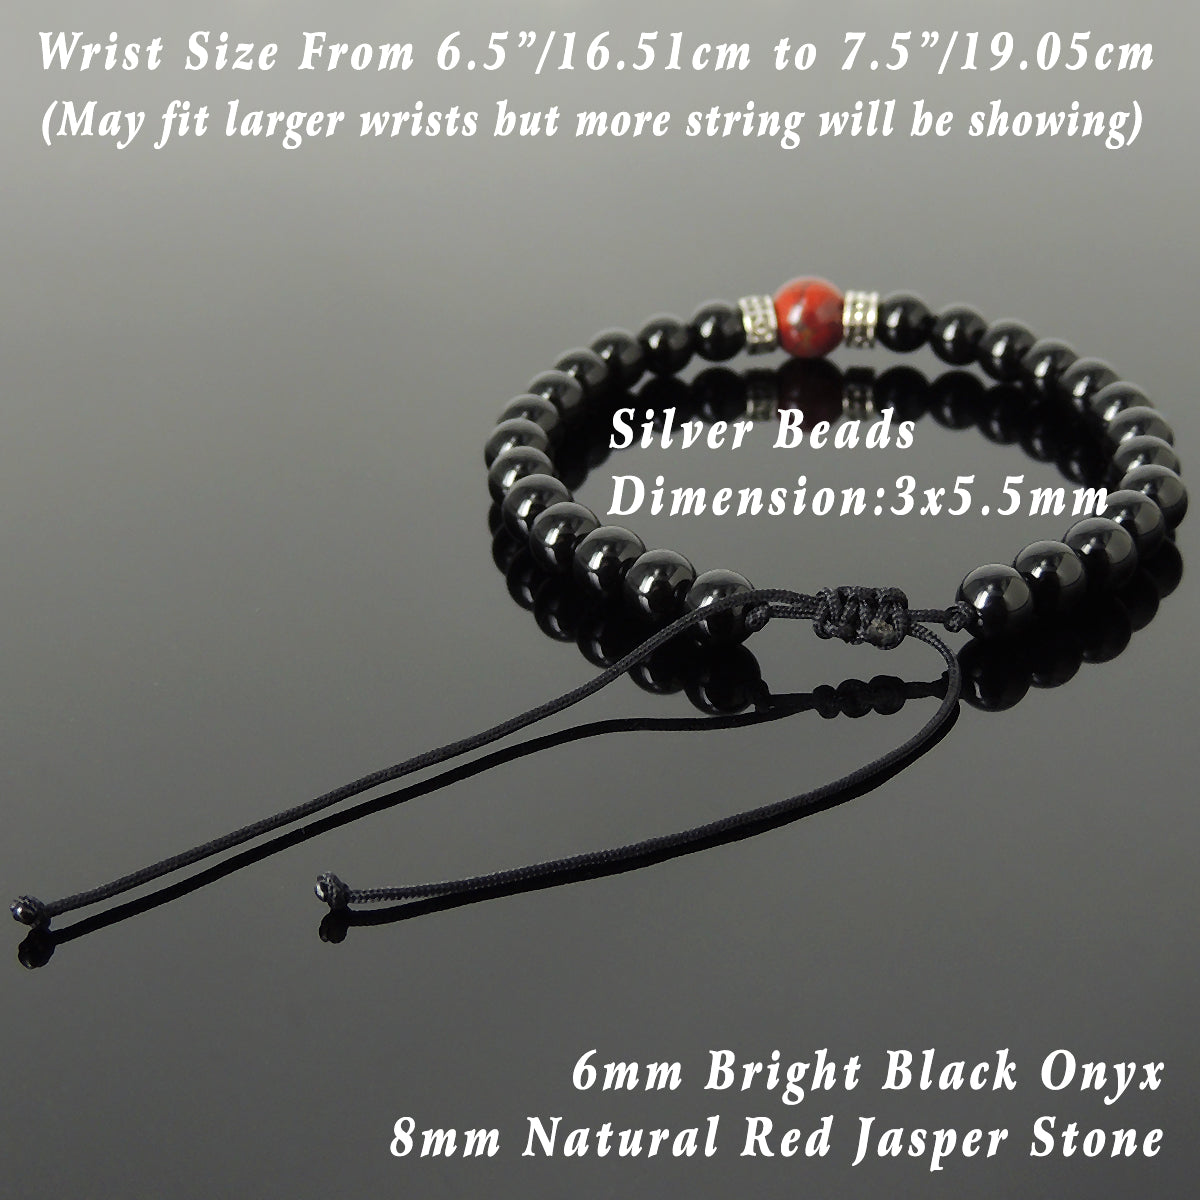 4aaeee2ebecb4 Red Jasper & Bright Black Onyx Adjustable Braided Bracelet with S925  Sterling Silver Celtic Cross Spacer Charms - Handmade by Gem & Silver BR1210